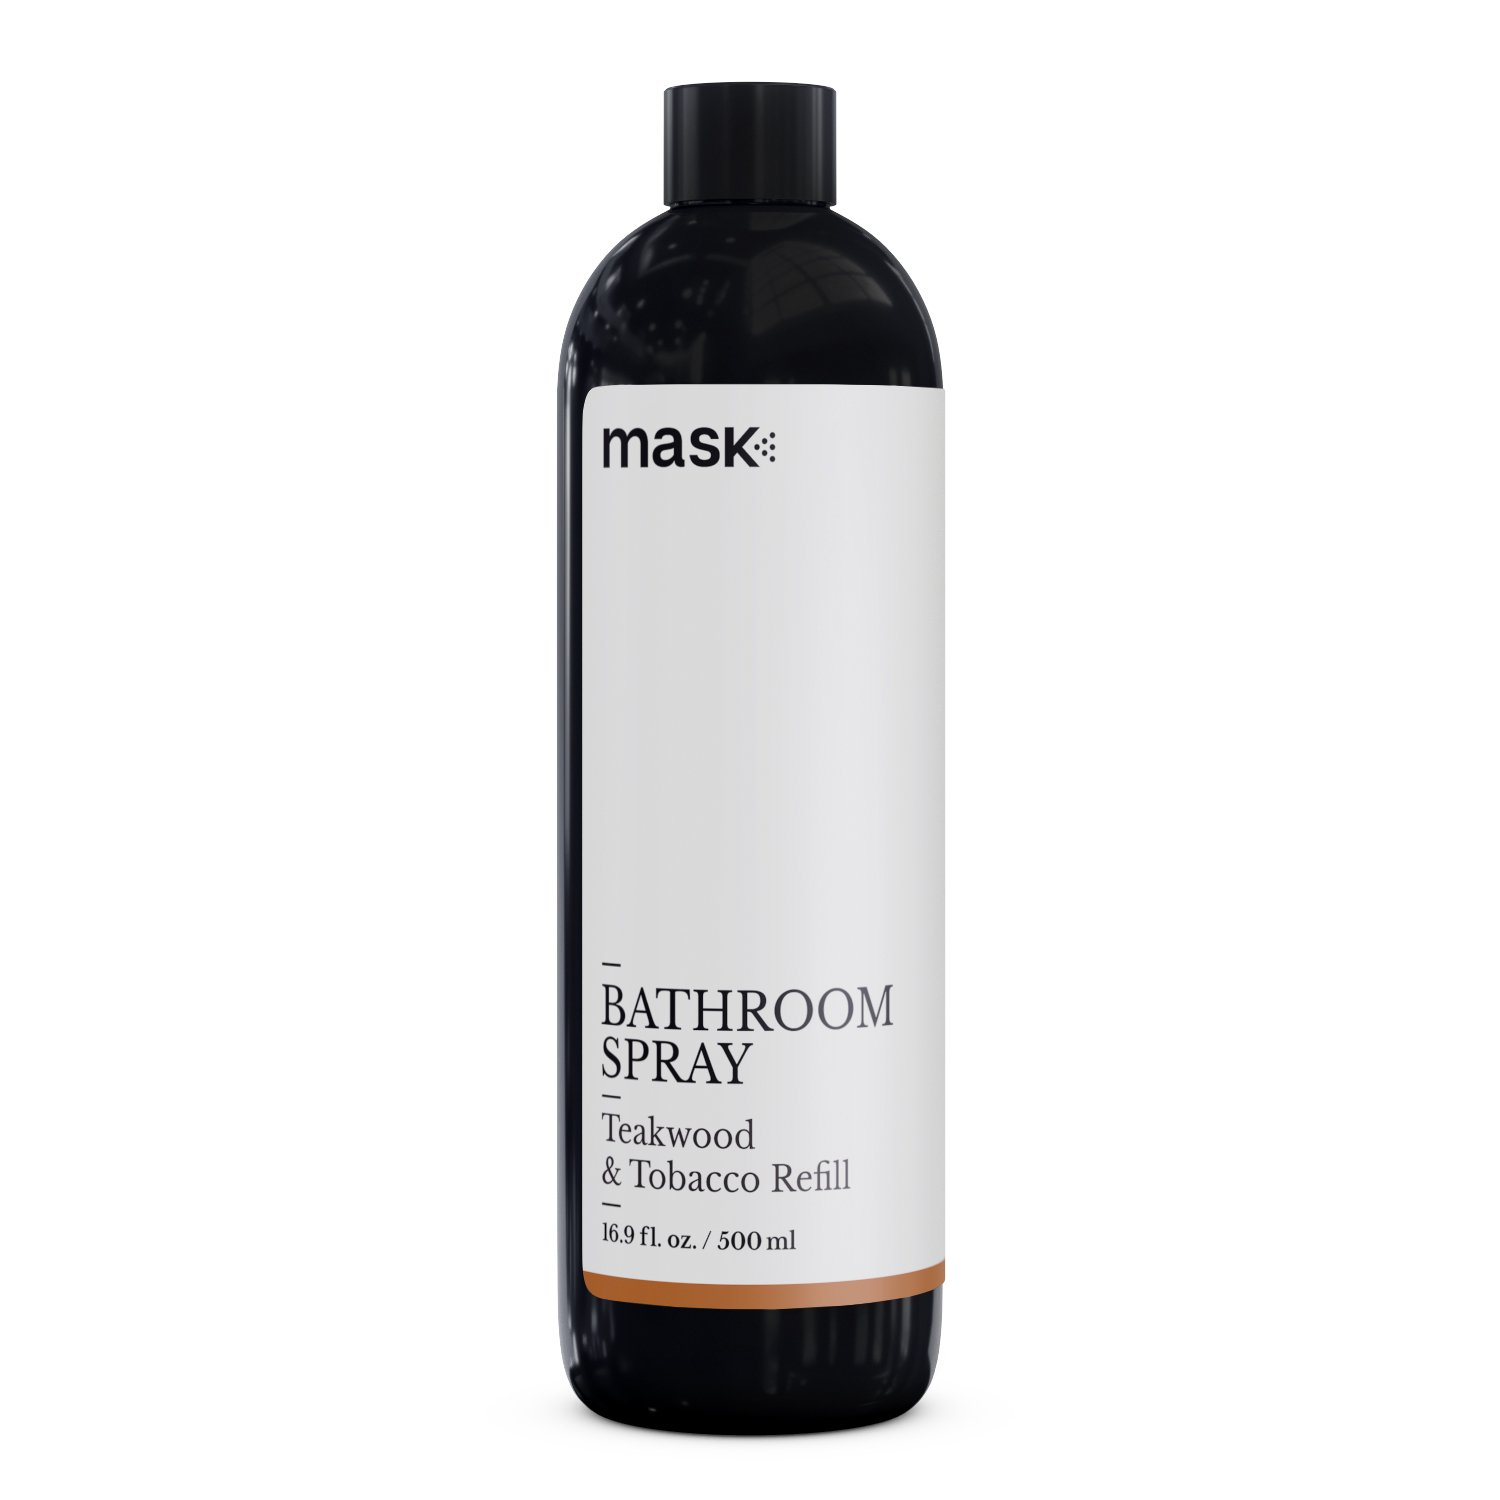 Mask Bathroom Spray Teakwood and Tobacco 16-Ounce Refill, Toilet Spray, Before You Go Deodorizer, Best Value Air Freshener Poo Poop Spray, Perfect for Travel, Risk Free Offer!